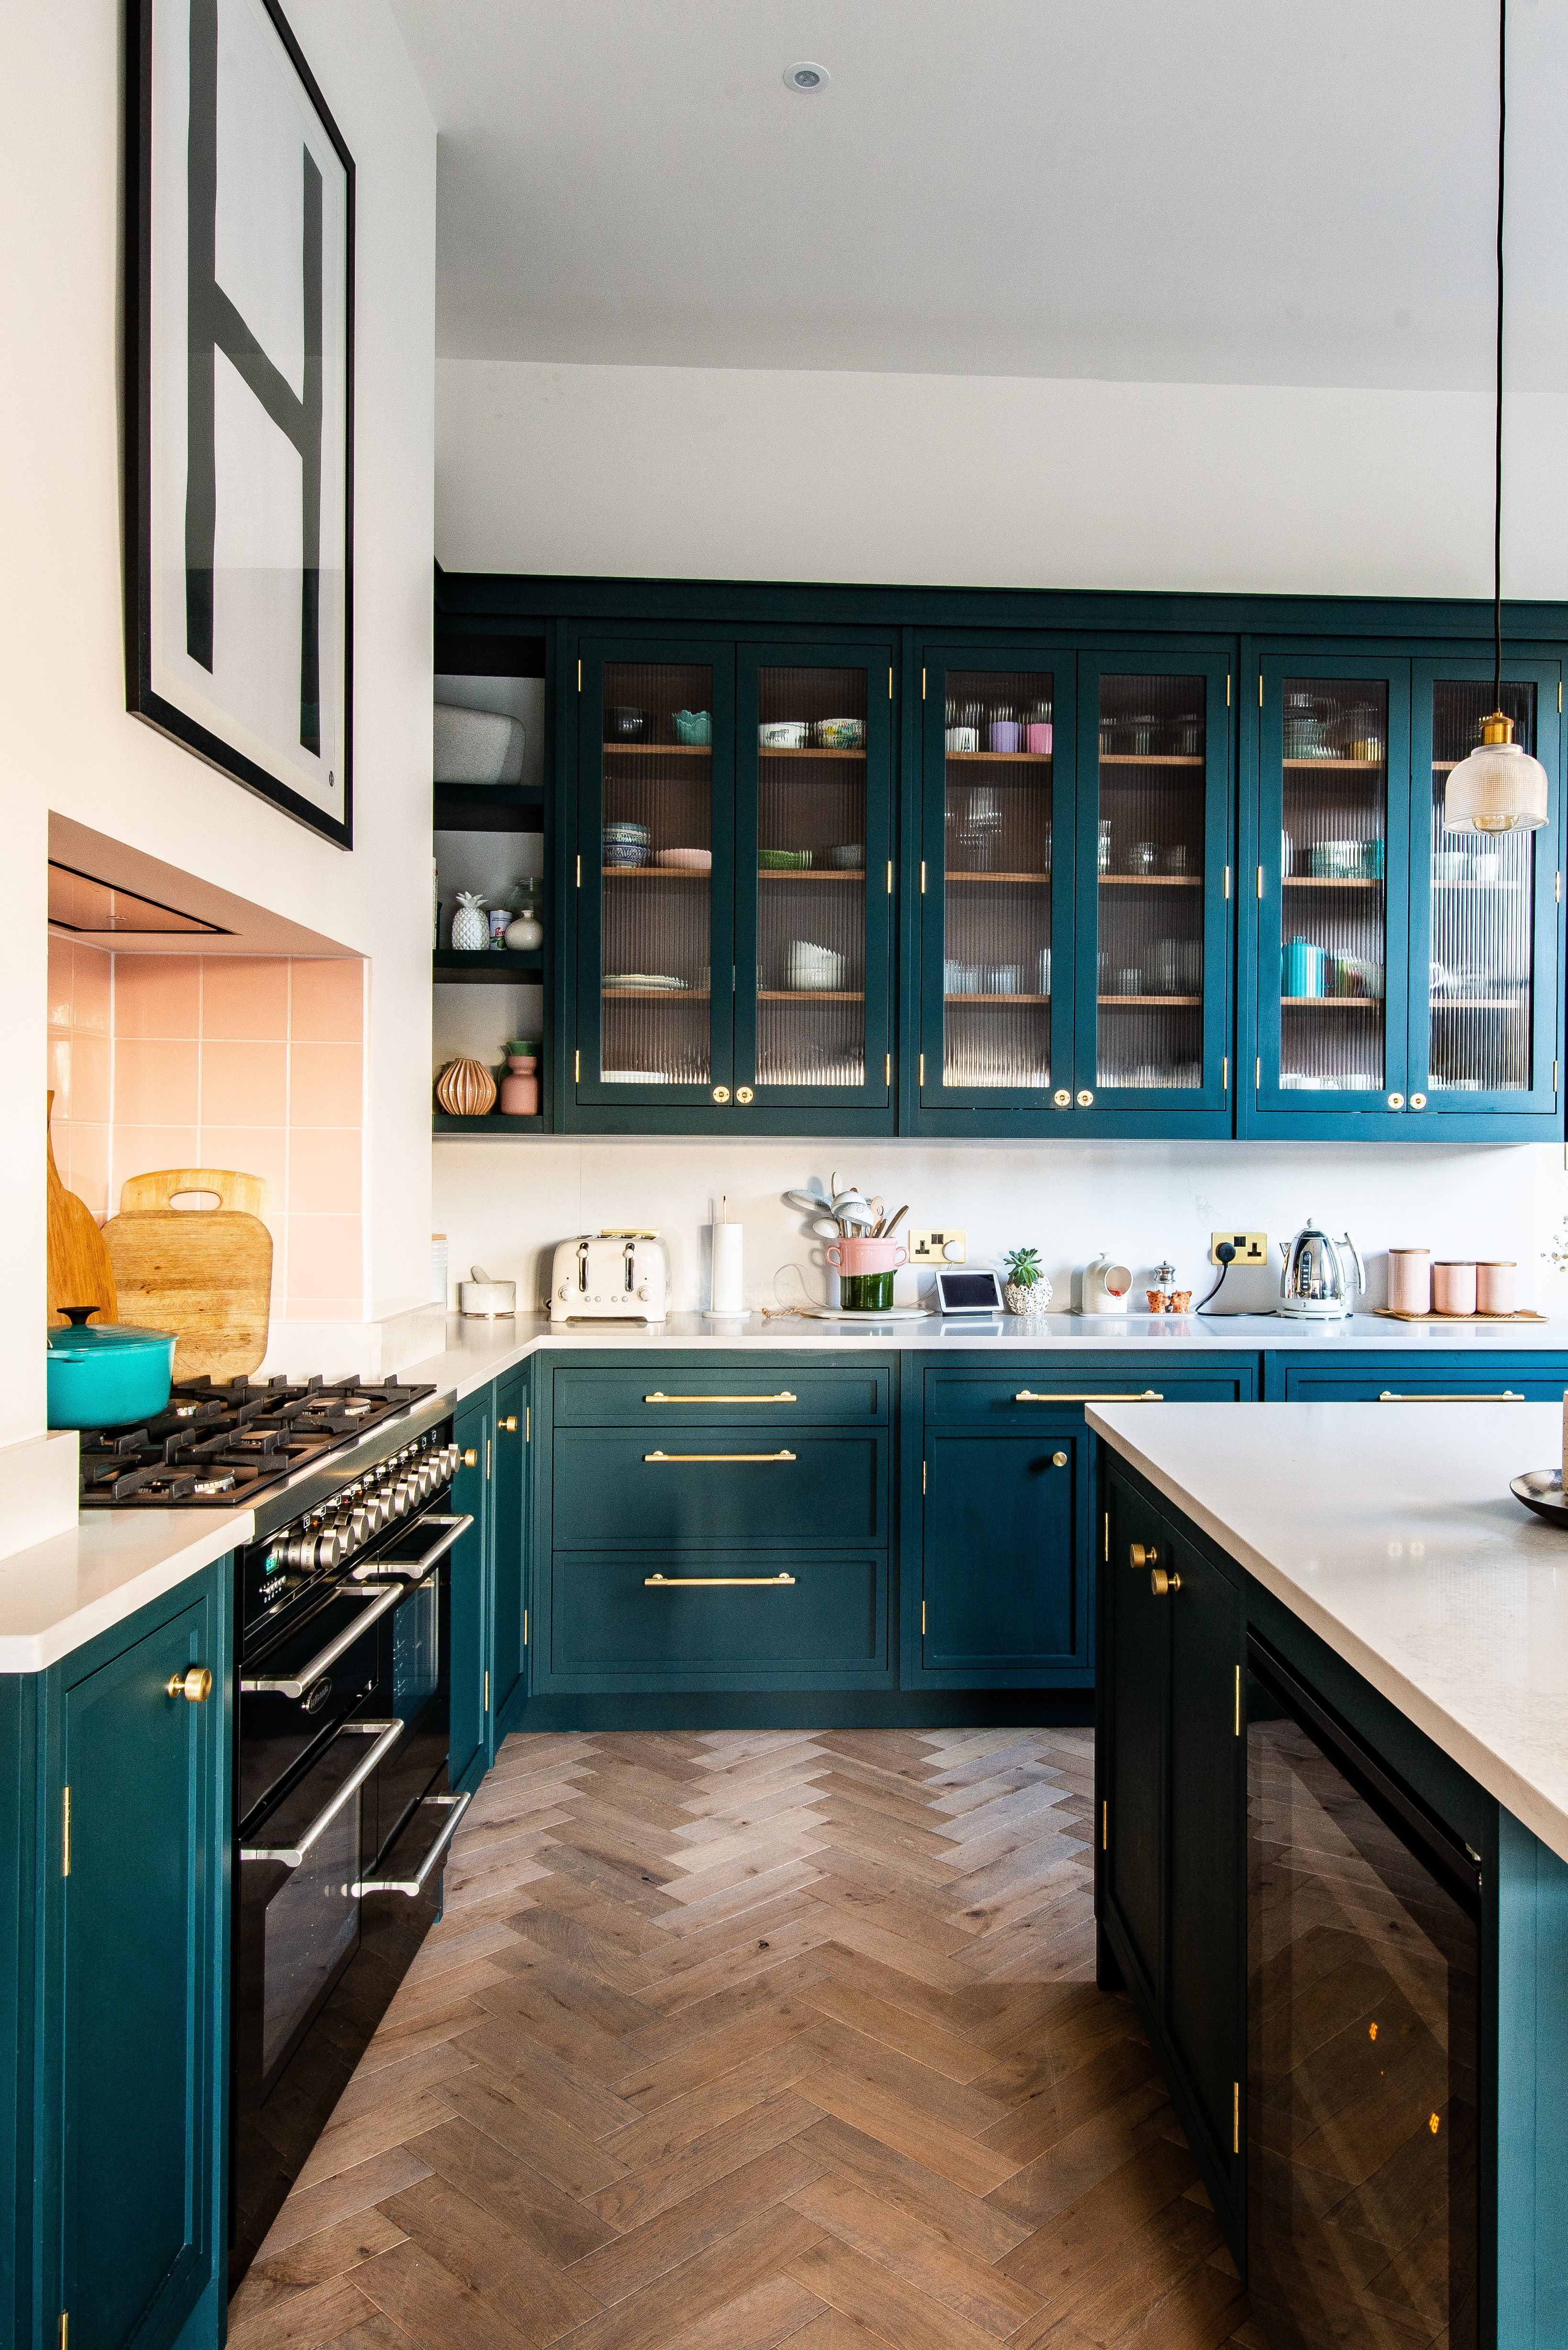 We recently designed and fitted this bespoke kitchen for